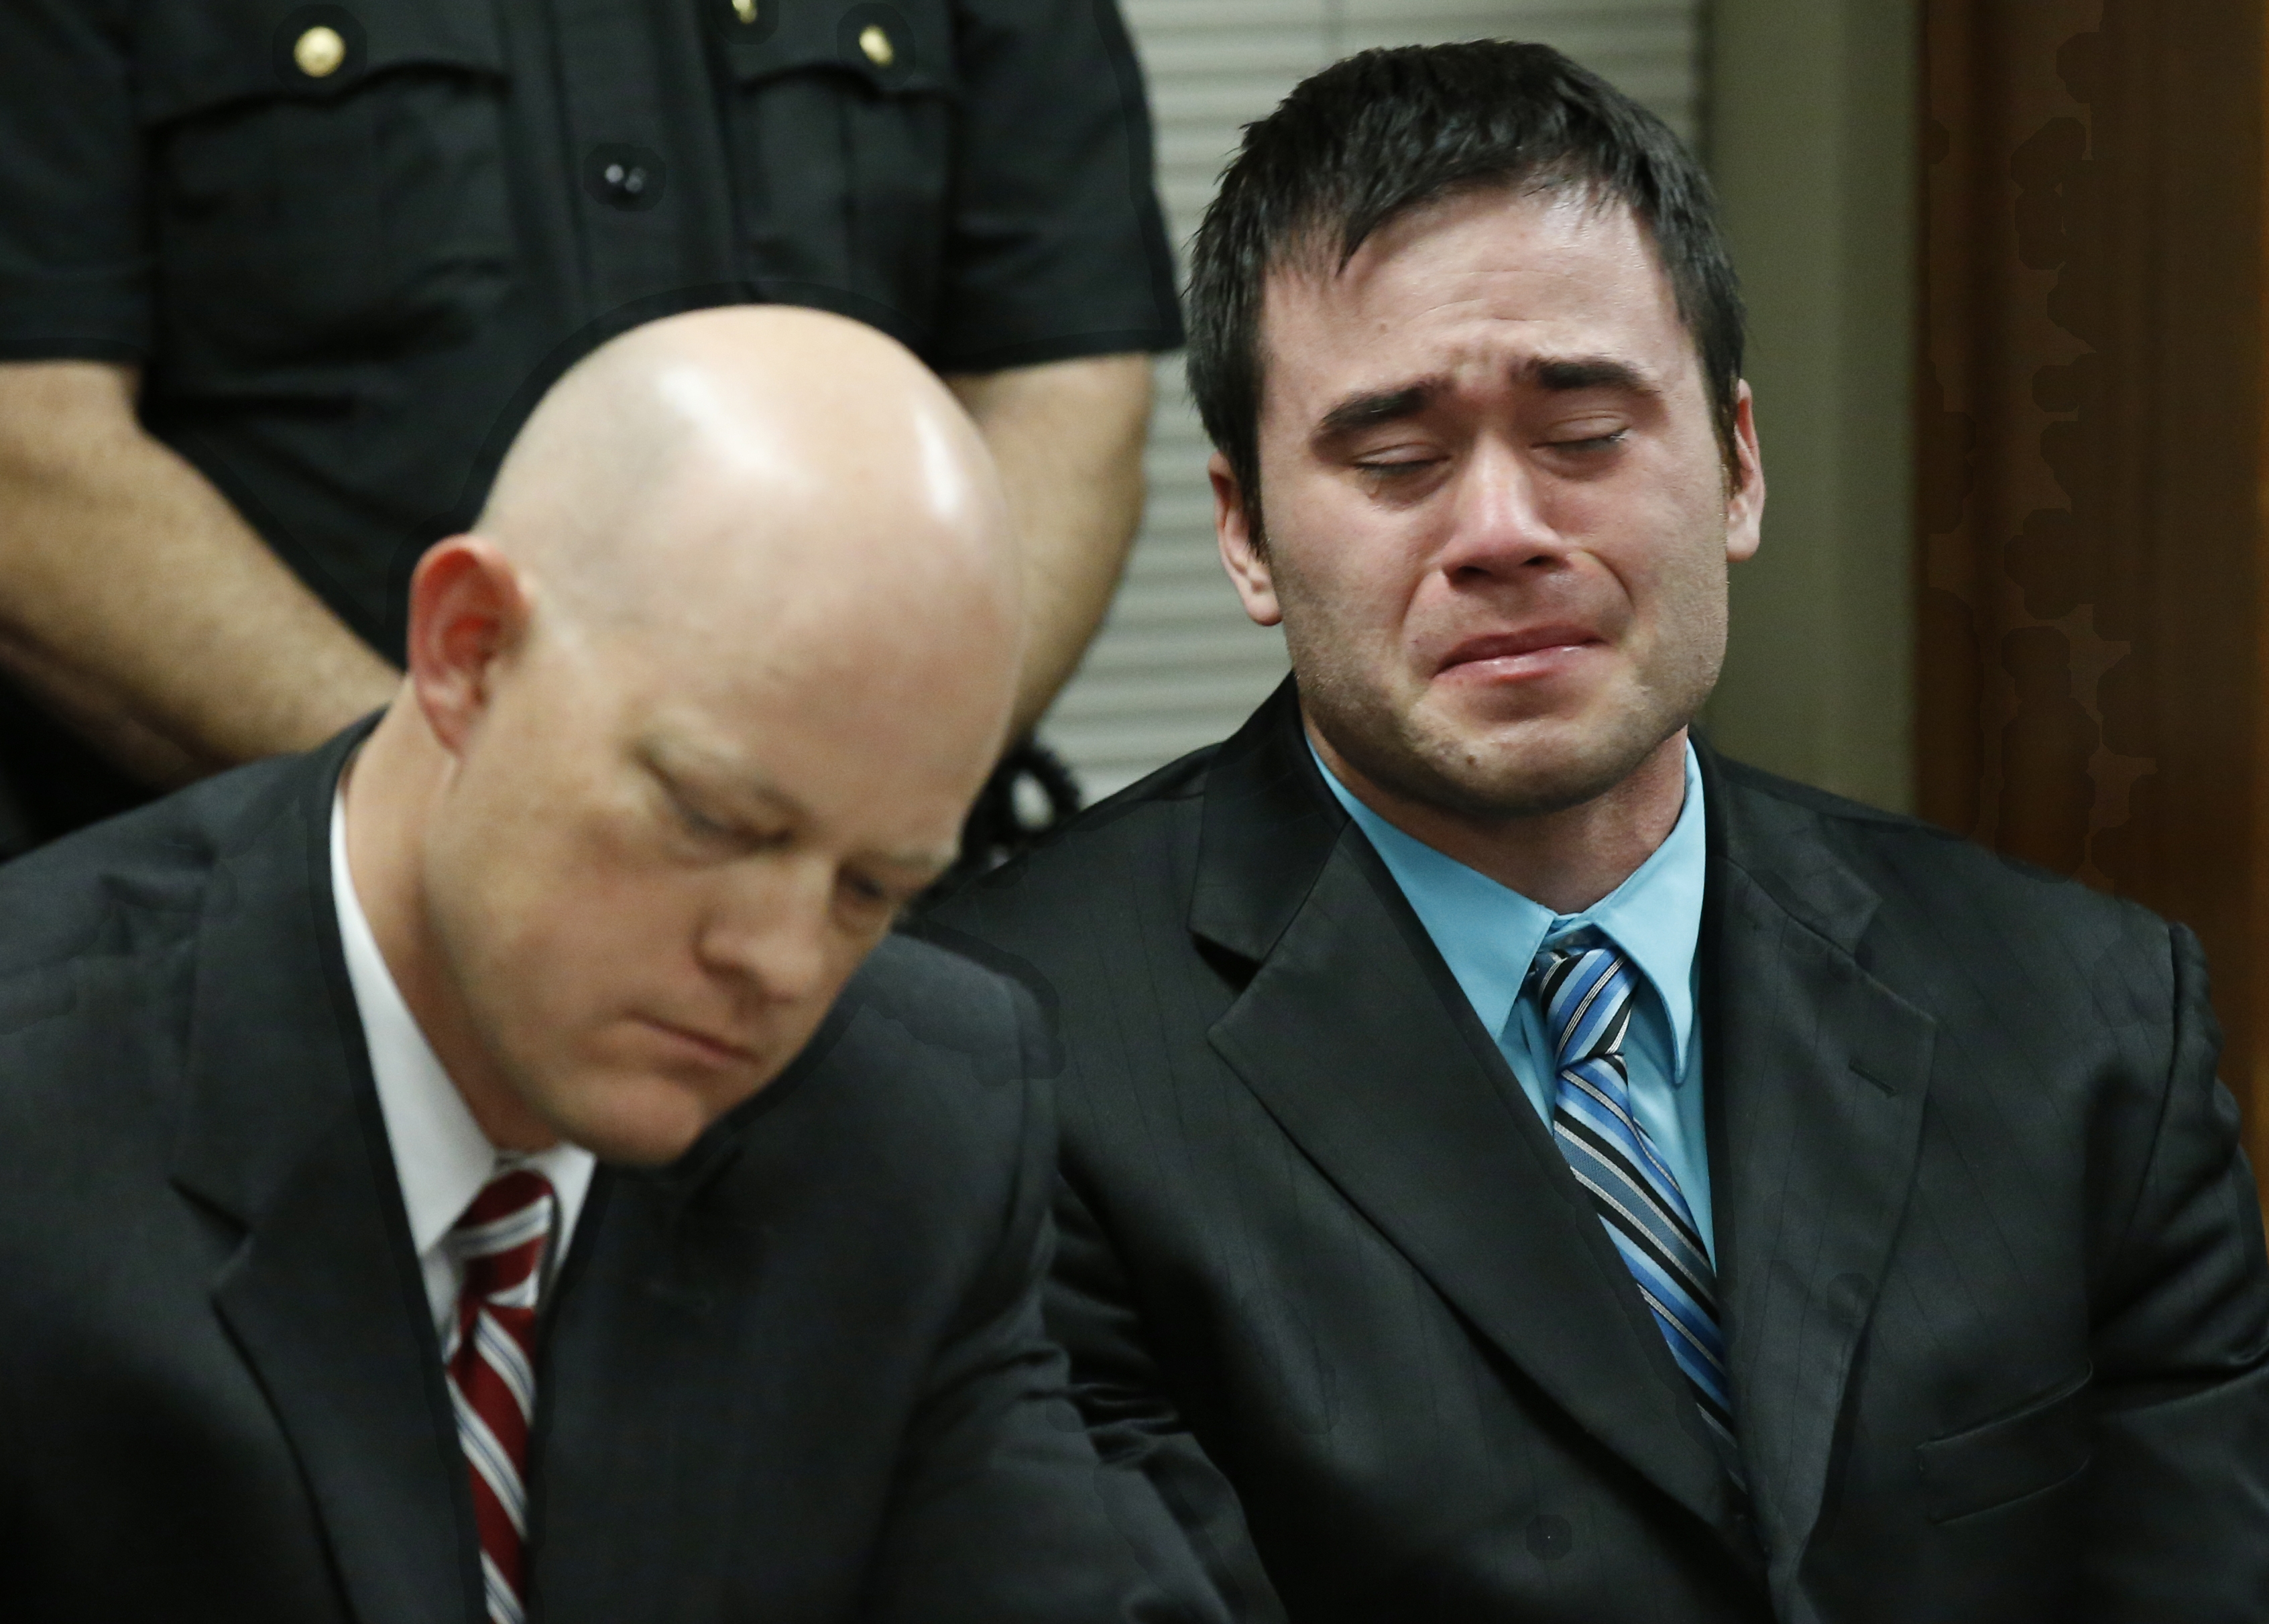 Daniel Holtzclaw: Why His Conviction is a Major Victory | Time